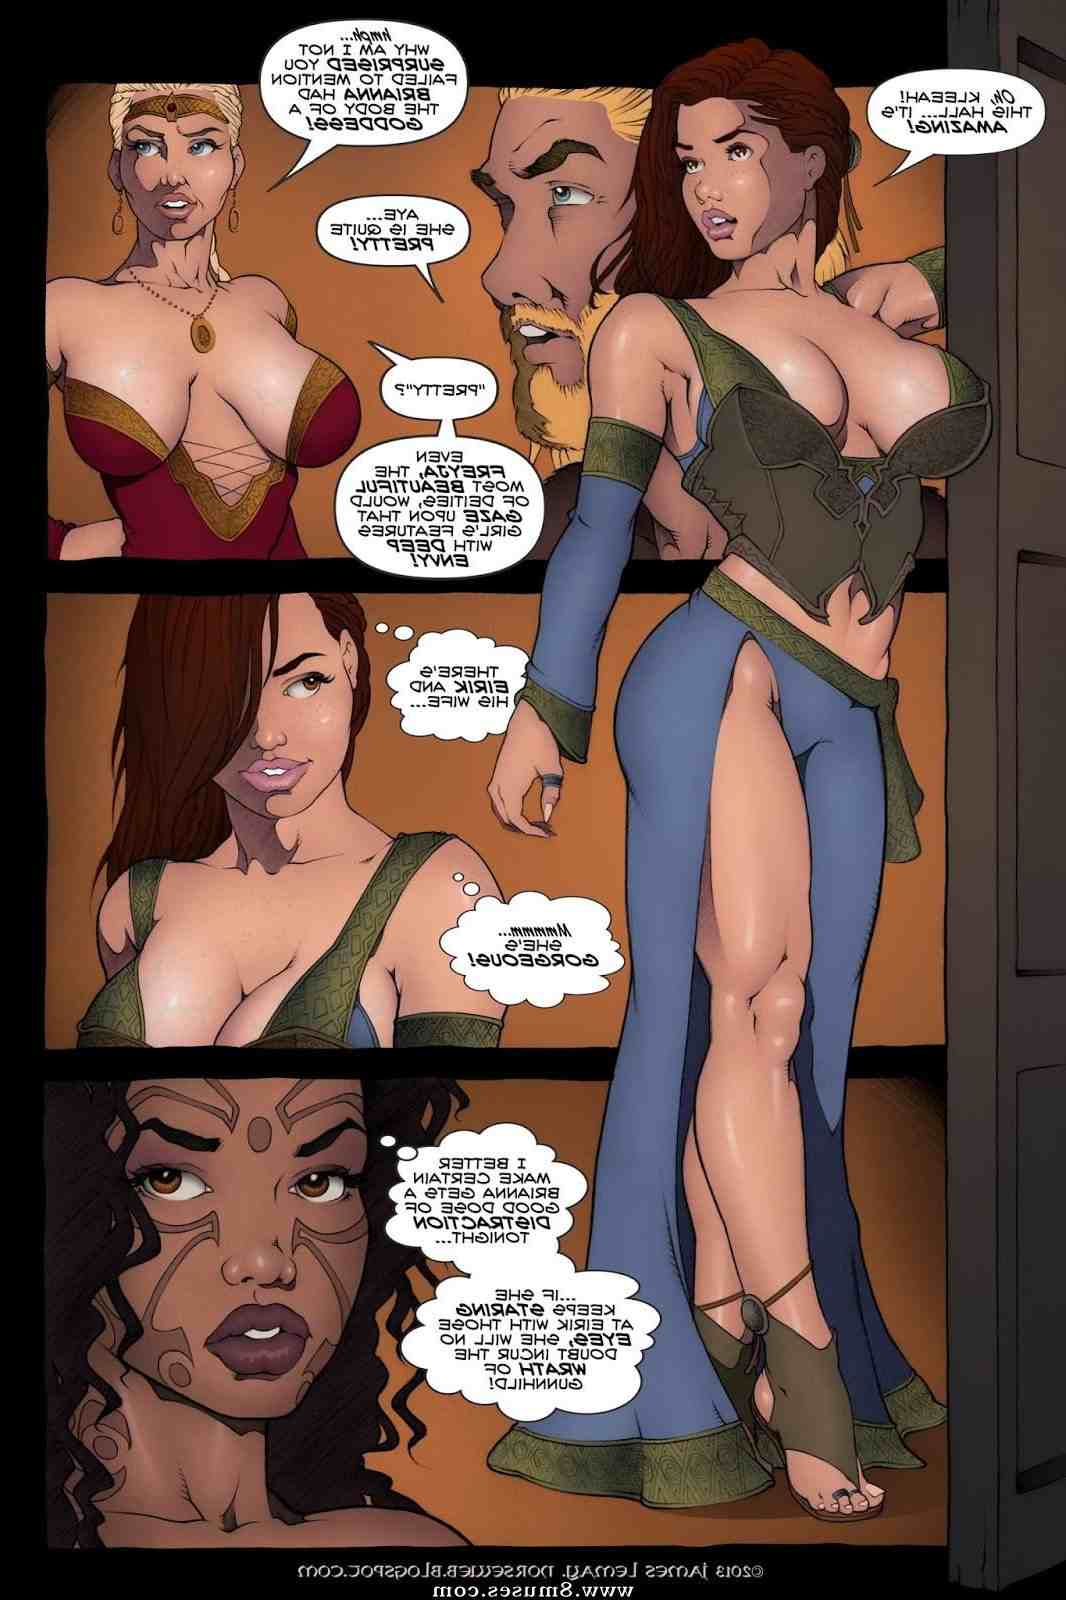 James-Lemay-Comics/Norse-Dawn-of-The-Shield-Maiden Norse_Dawn_of_The_Shield_Maiden__8muses_-_Sex_and_Porn_Comics_78.jpg